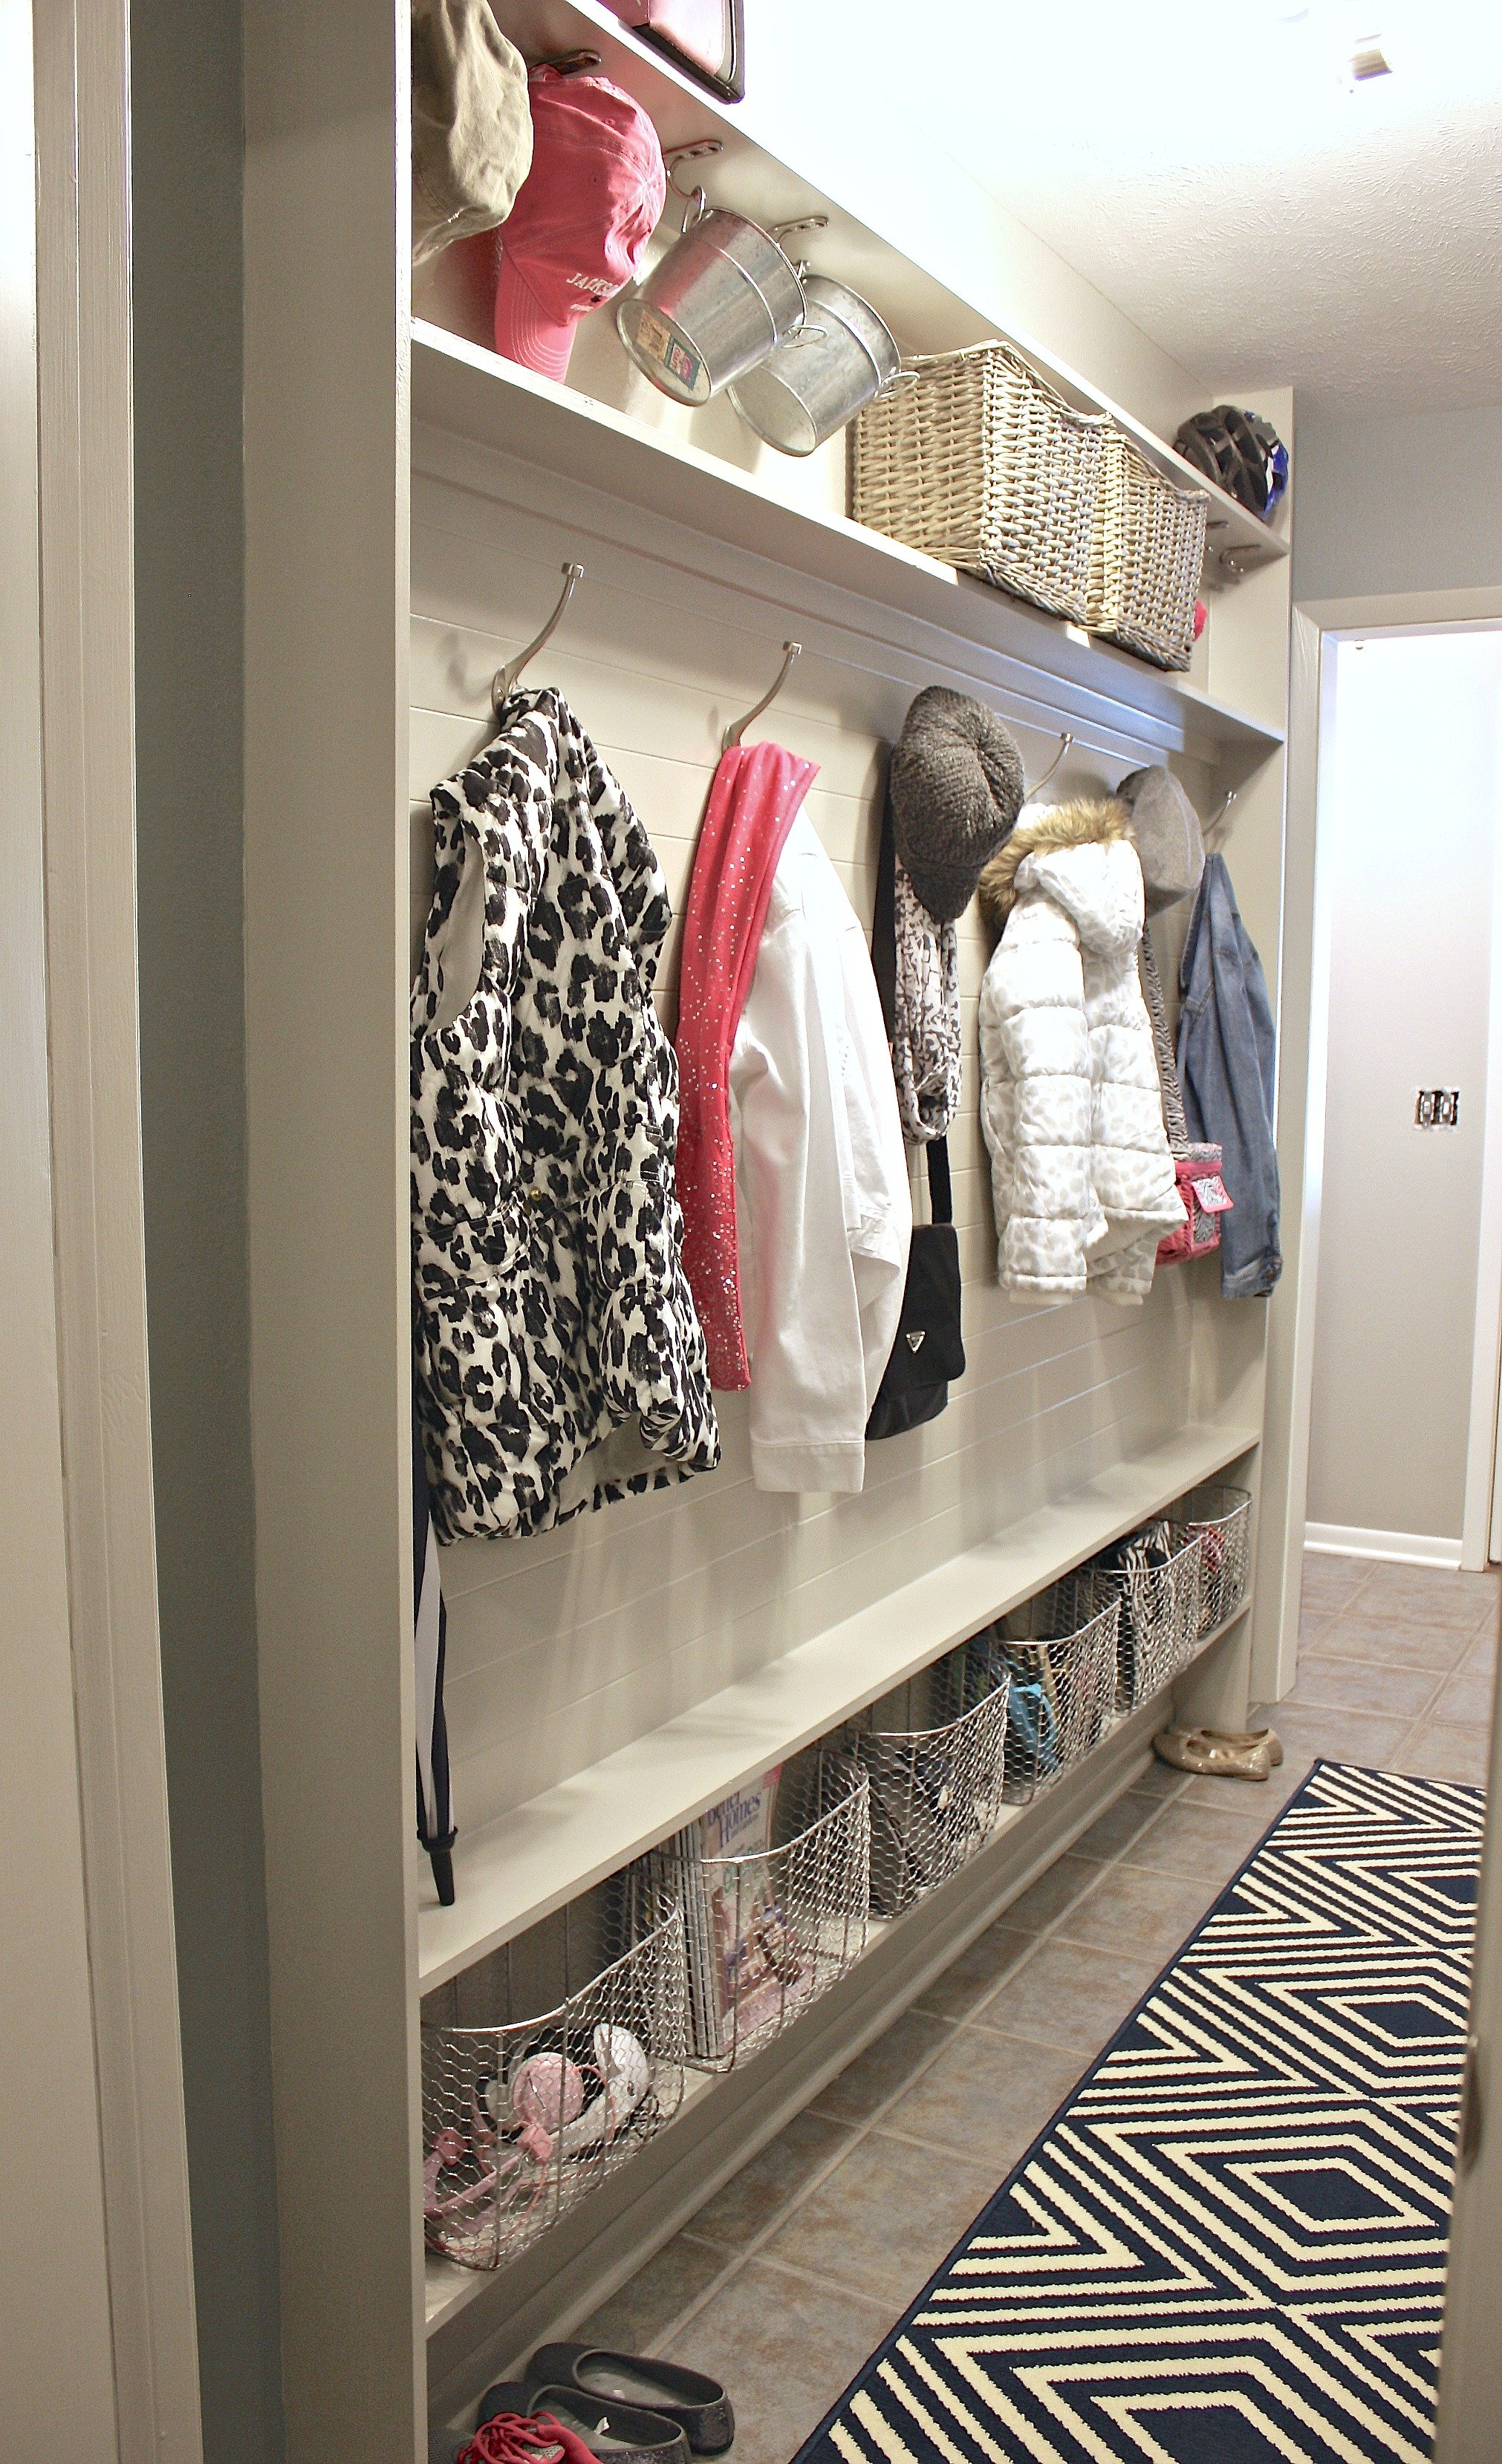 DIY narrow mudroom wall with only 5 inches of depth needed. Plan and details.